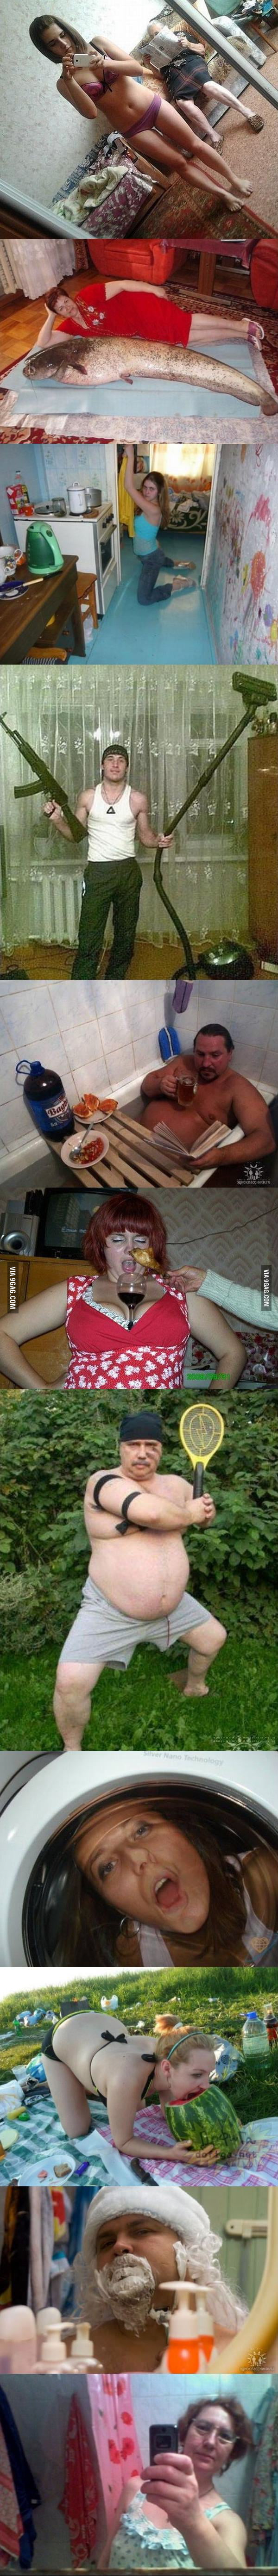 Russian dating site photos 9gagg